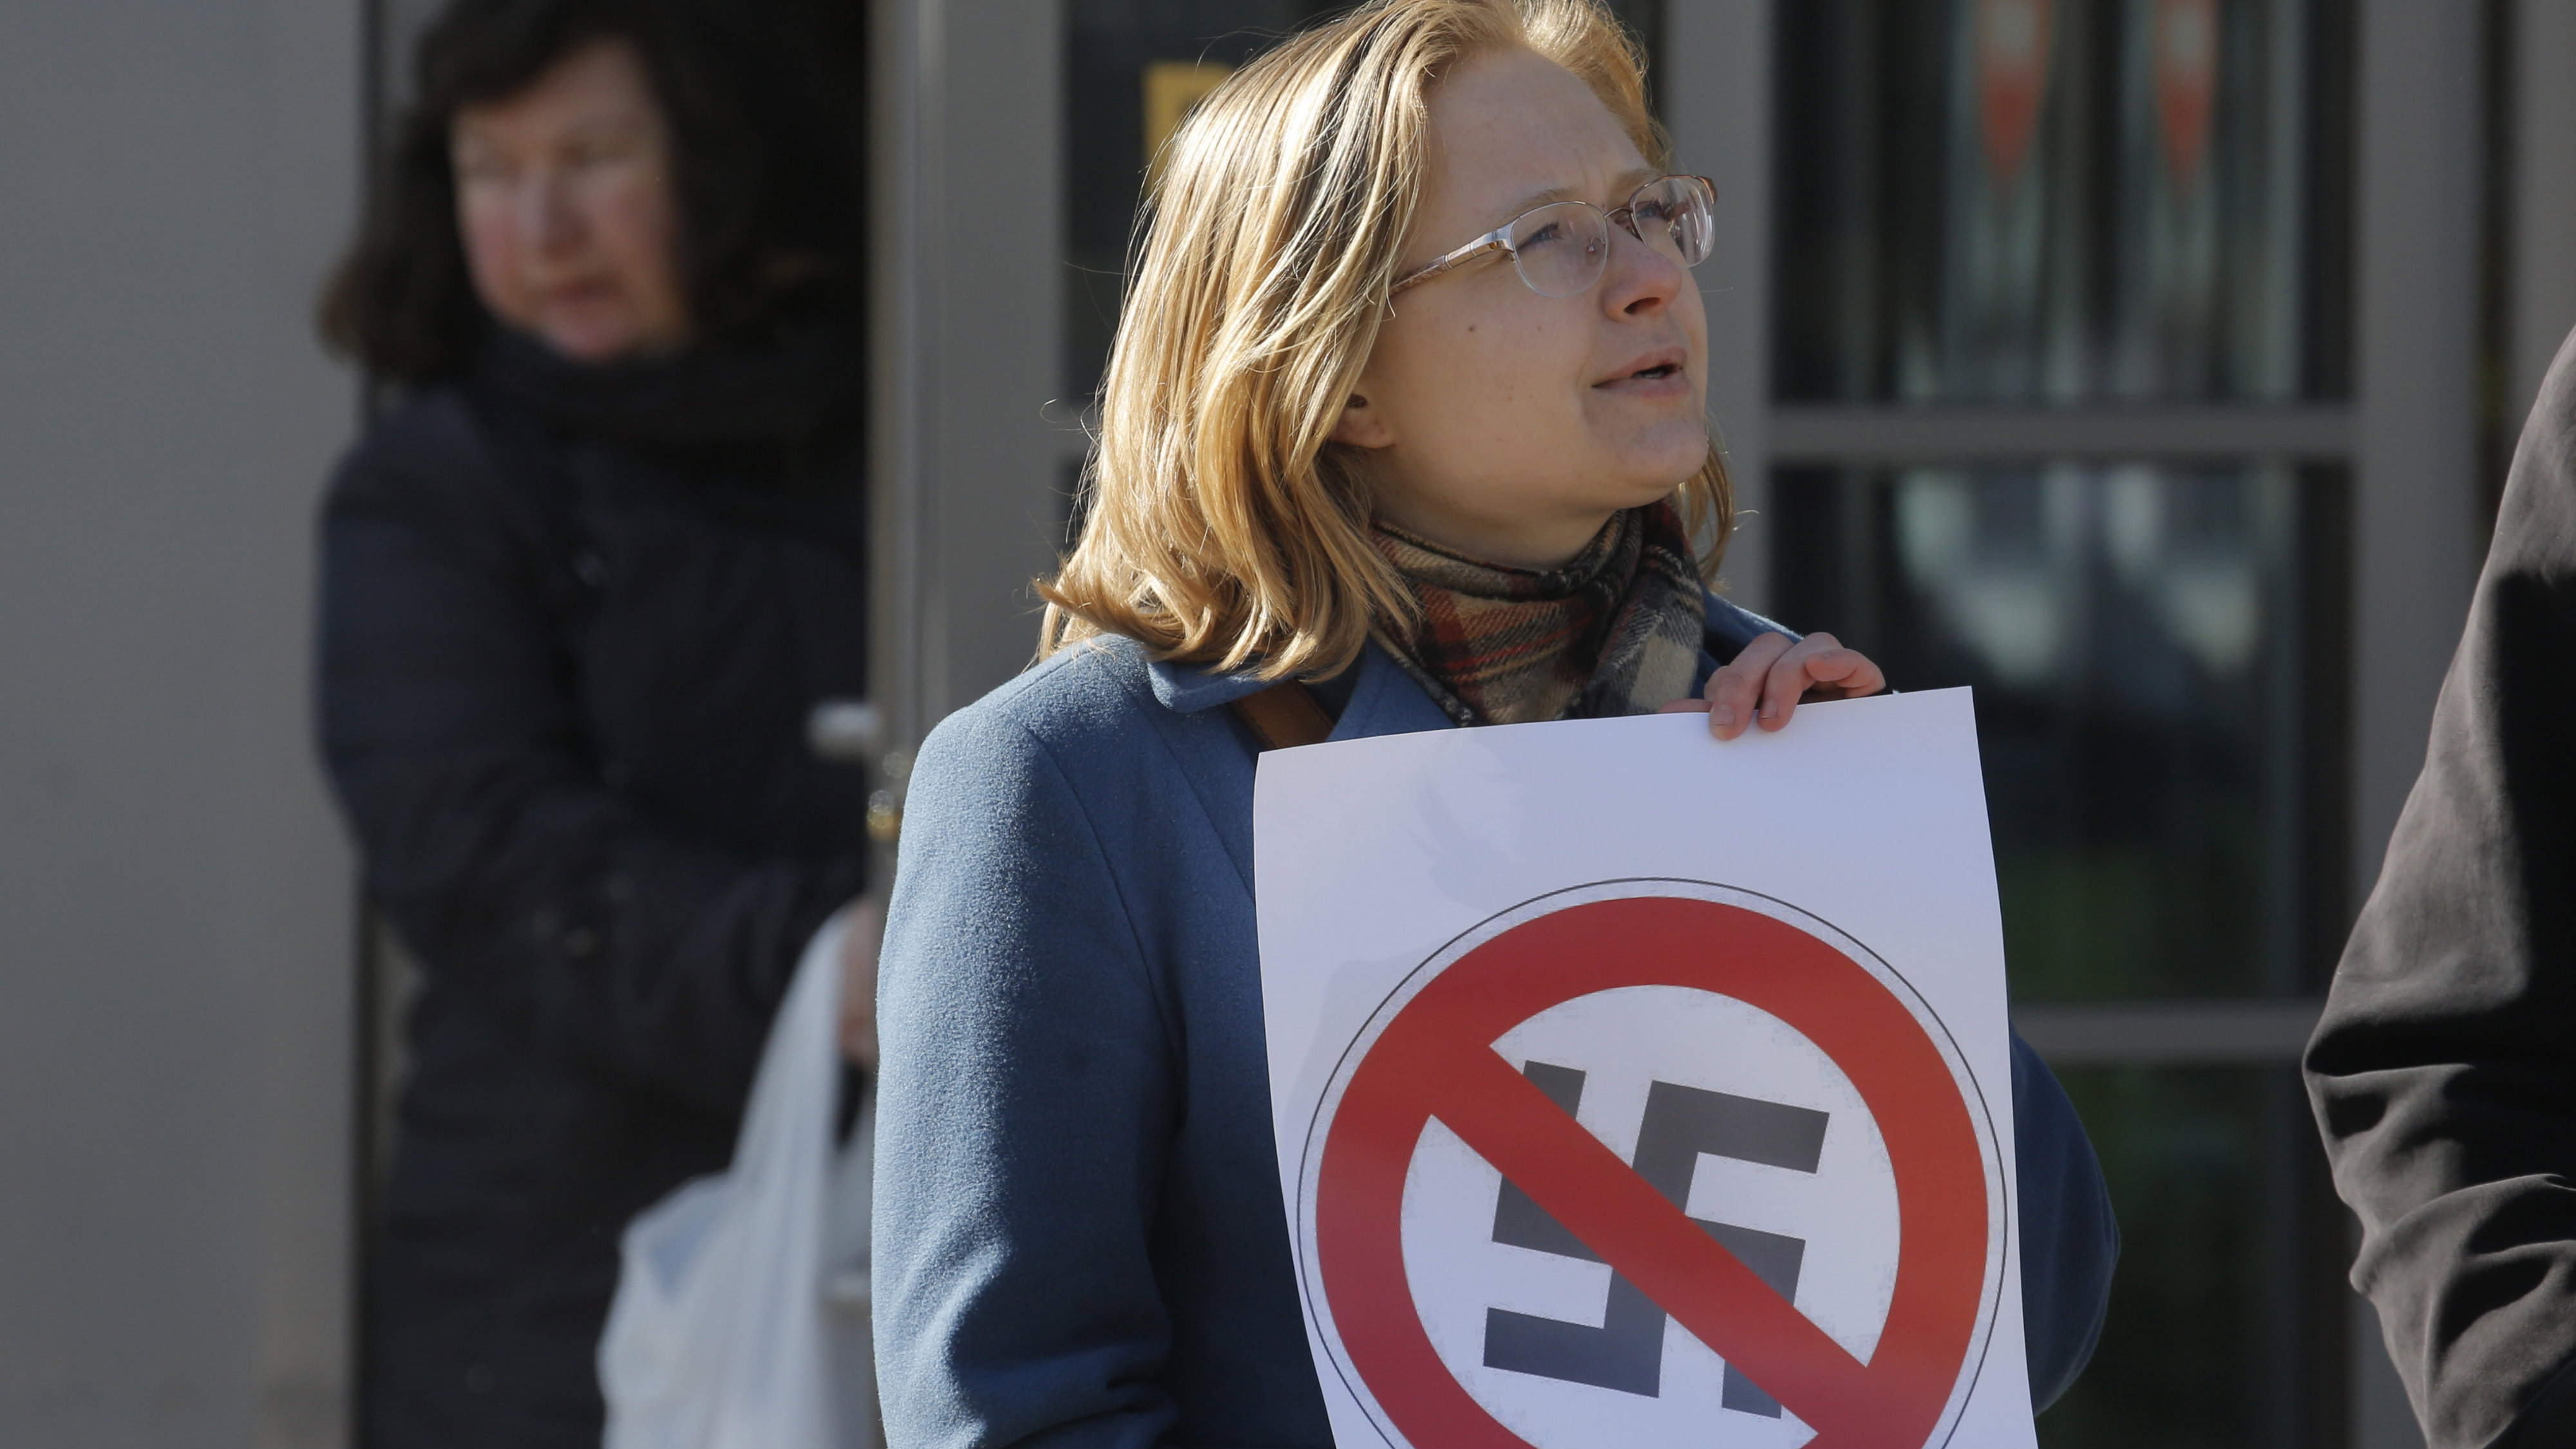 A Russian anti-fascist activist holds a poster during a protest near the venue of the the International Russian Conservative Forum in St. Petersburg, Russia, Sunday, March 22, 2015. Nationalist supporters of Russian President Vladimir Putin brought together controversial far-right politicians from across Europe on Sunday in an effort to demonstrate international support for Russia and weaken European Union commitment to sanctions imposed on Russia over its role in Ukraine.